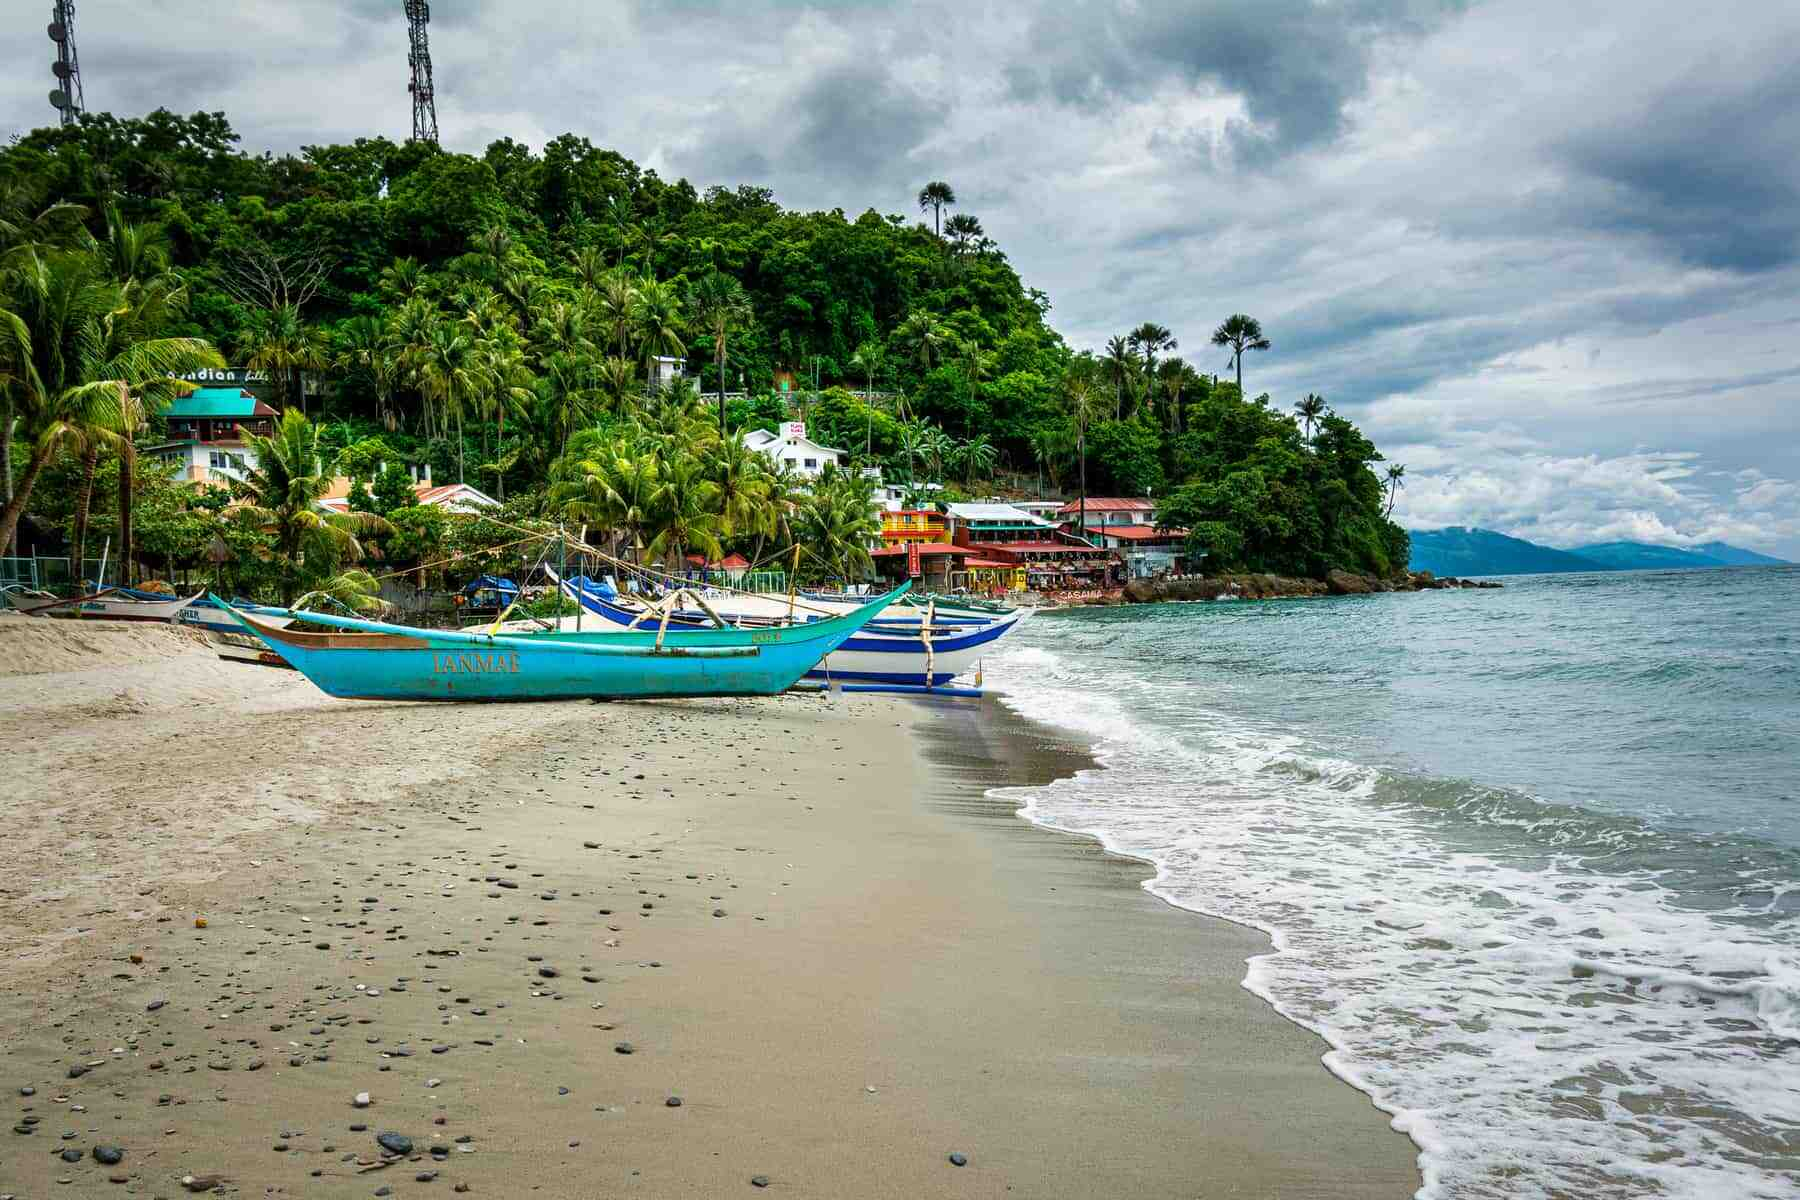 Puerto Galera, Mindoro. Philippines. The many dive resorts are open for business and attract scuba divers from all over the world